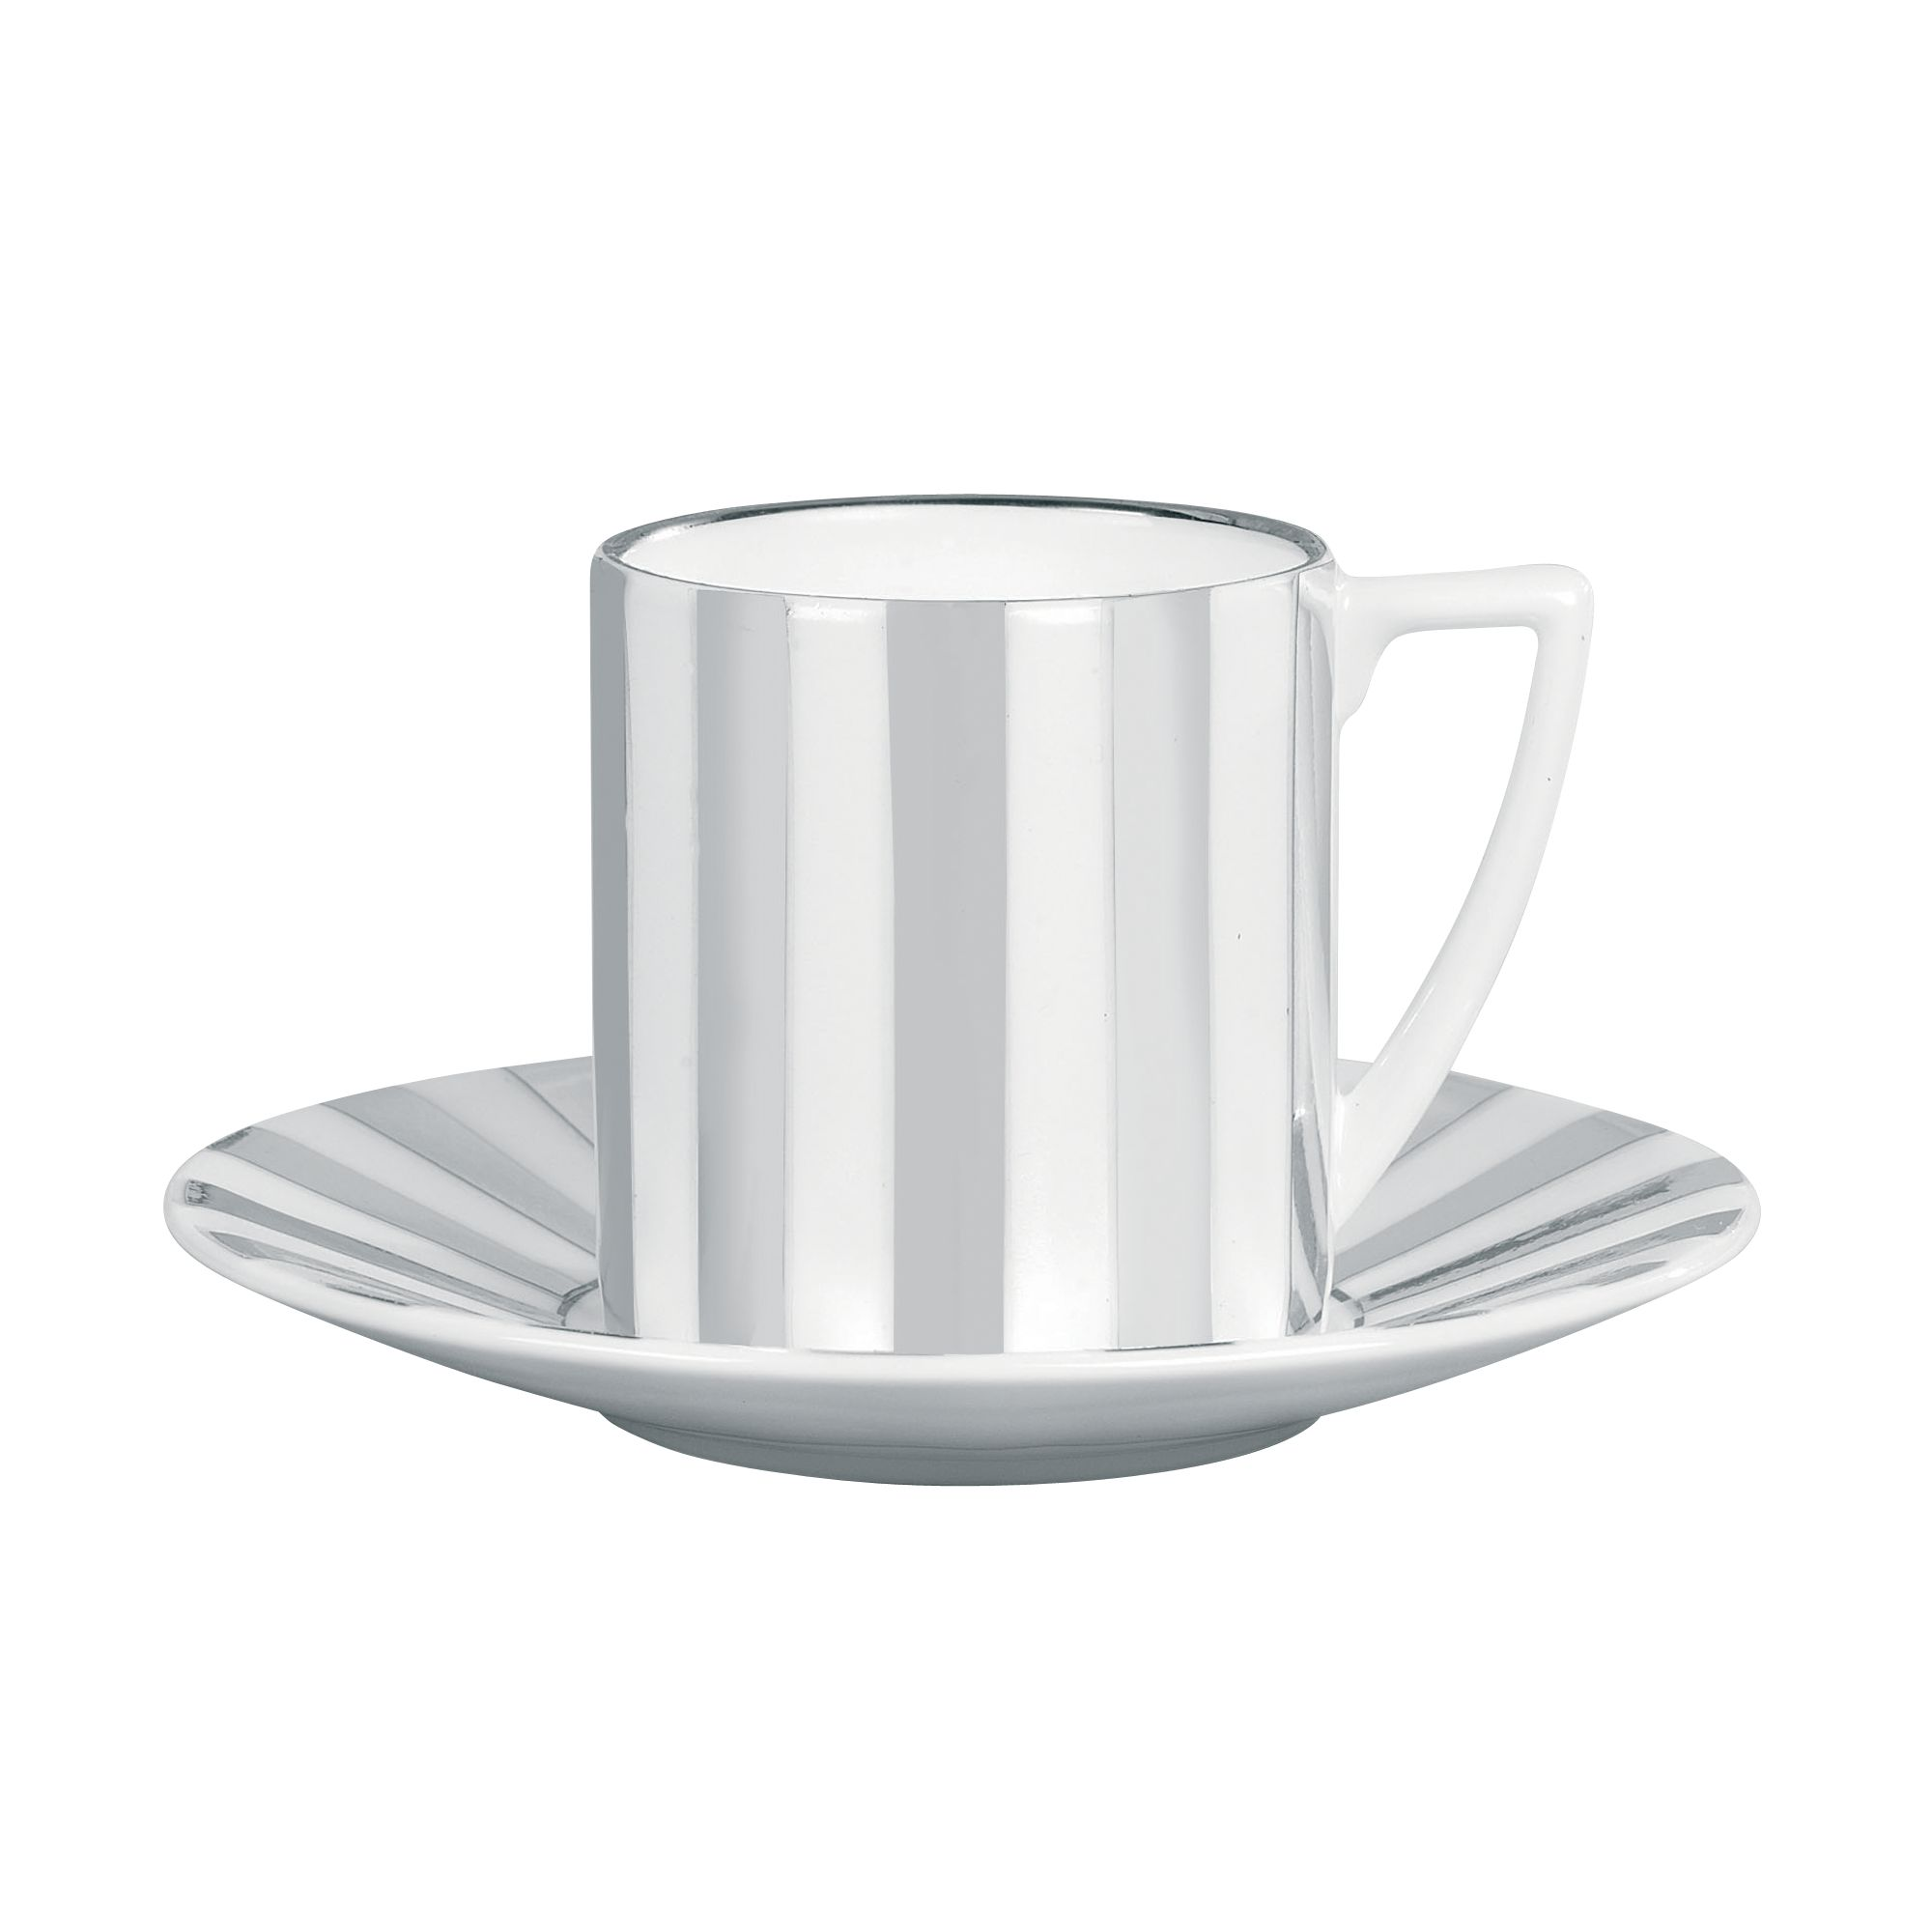 Platinum Striped Espresso Saucer